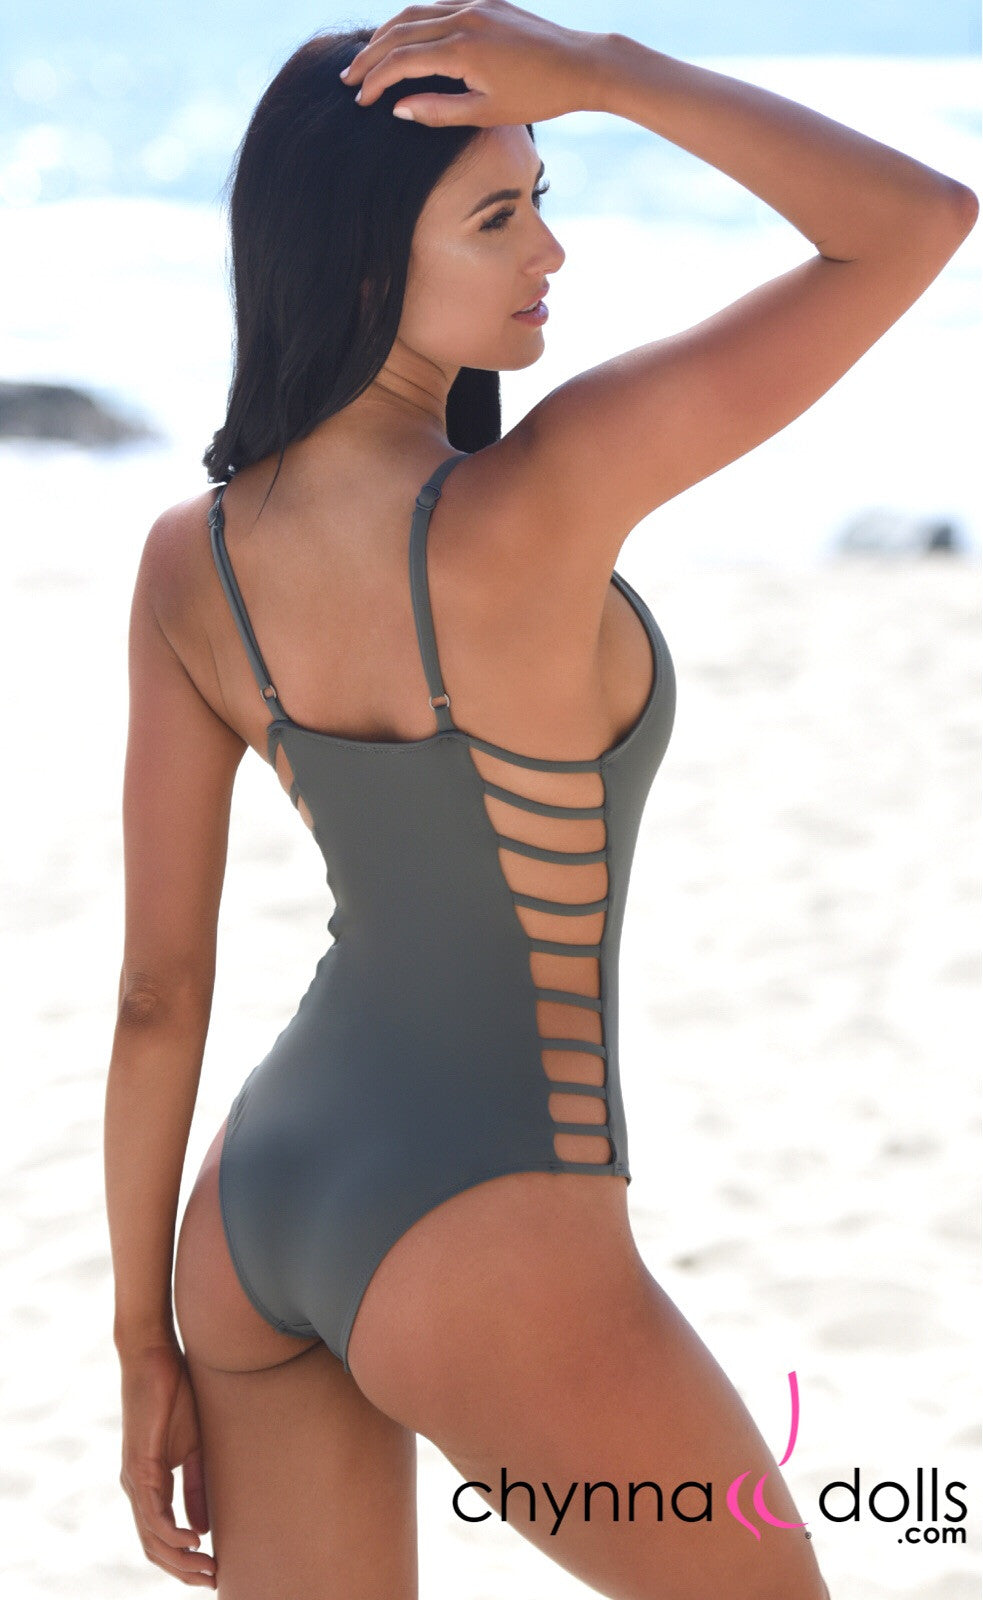 Tuscany: One Piece Swimsuit w/ Ladder Details at the Sides in Stone Gray - Chynna Dolls